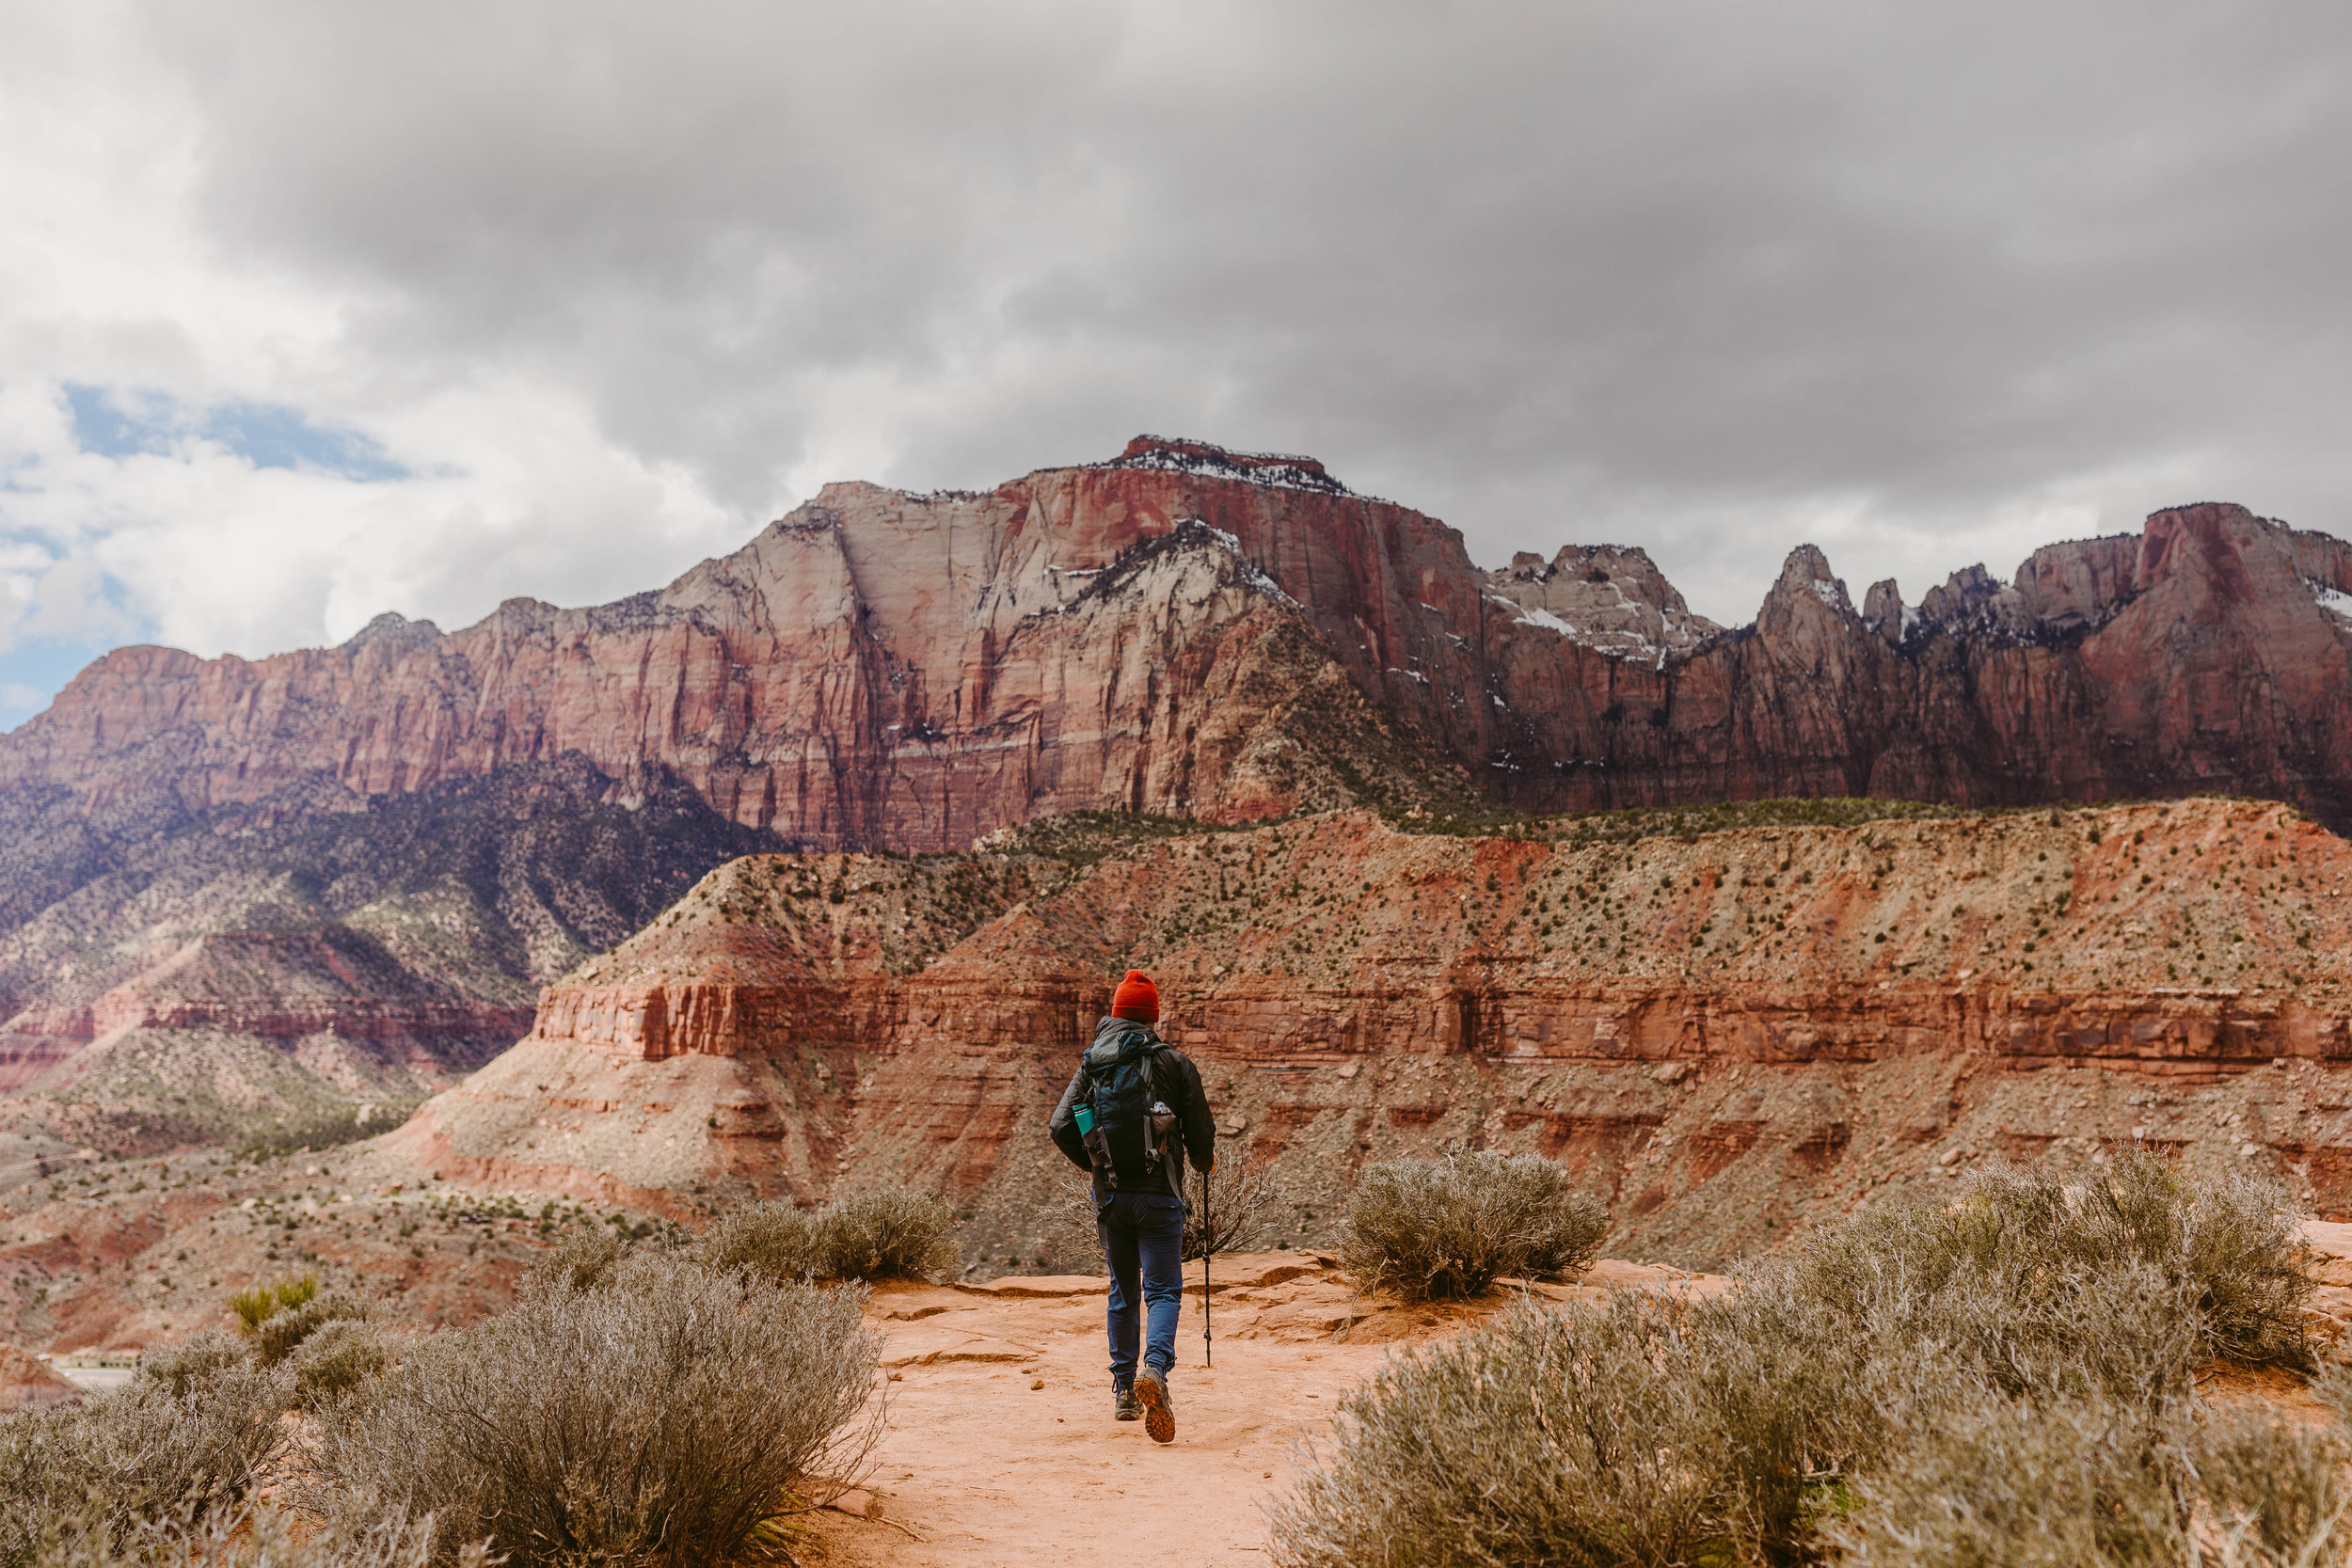 Justin on trail in Zion National Park